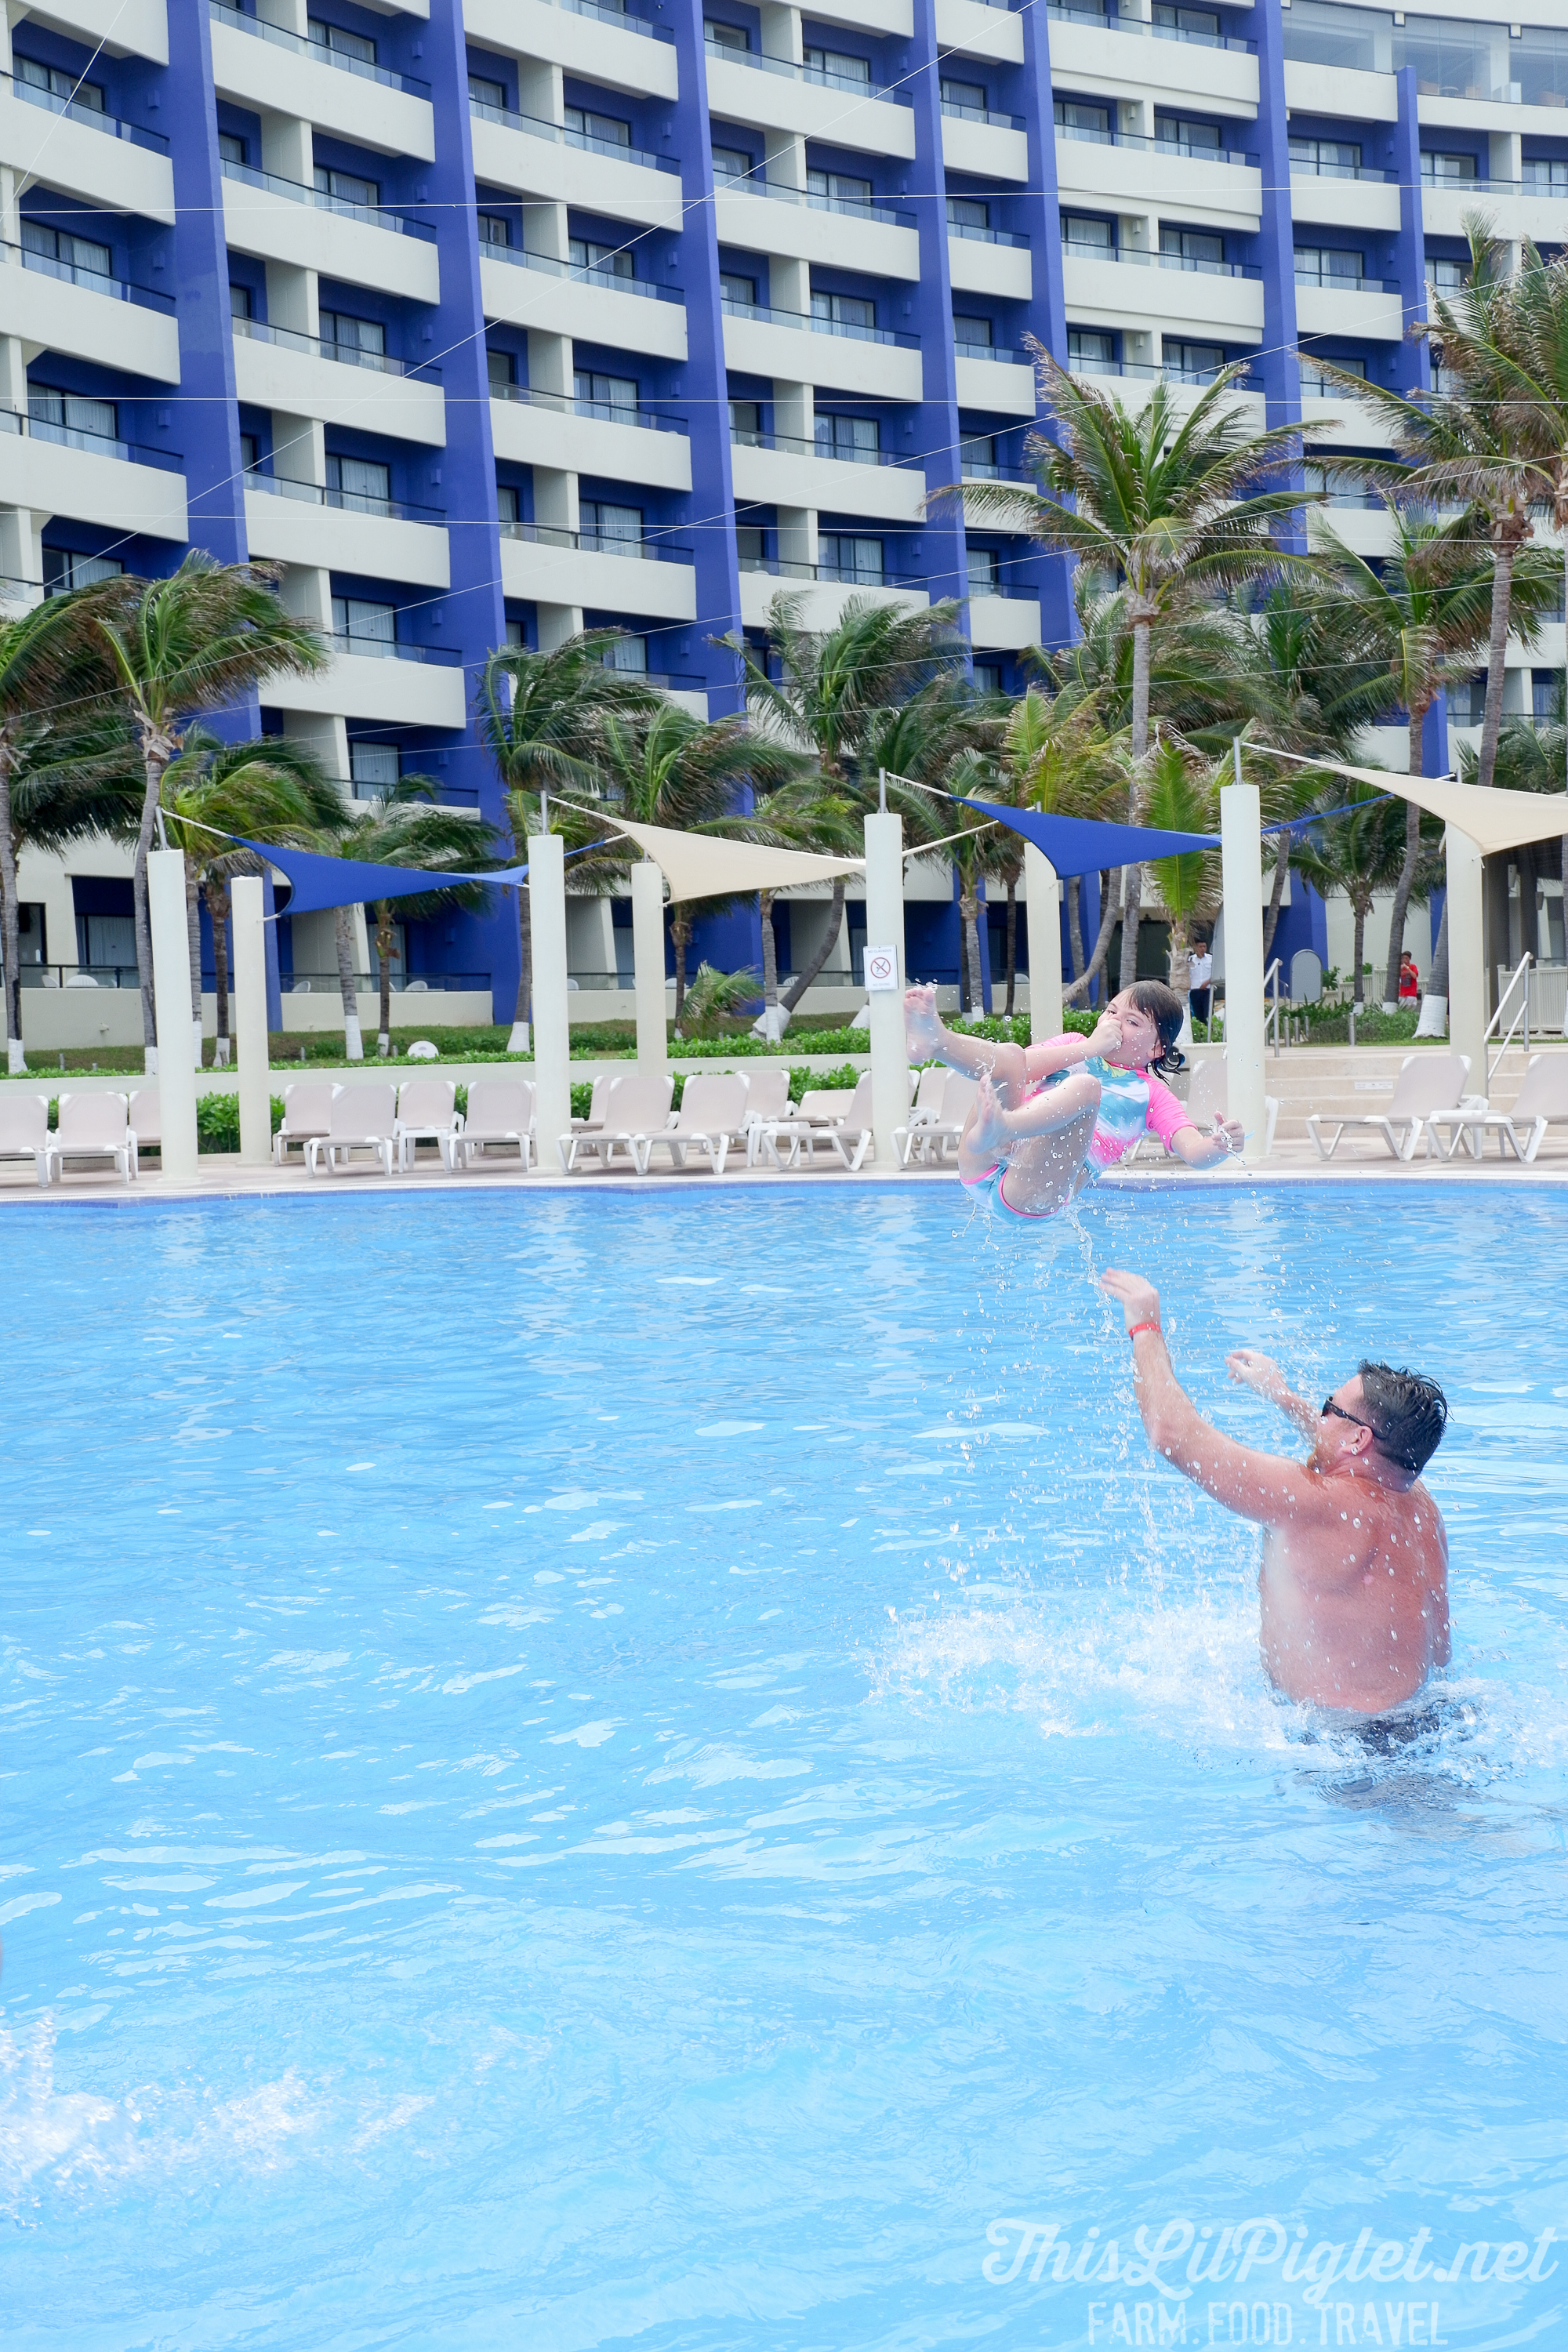 Family Vacations for All Ages at Cancun Paradise Club Resort: Things to Do - Swimming // thislilpiglet.net